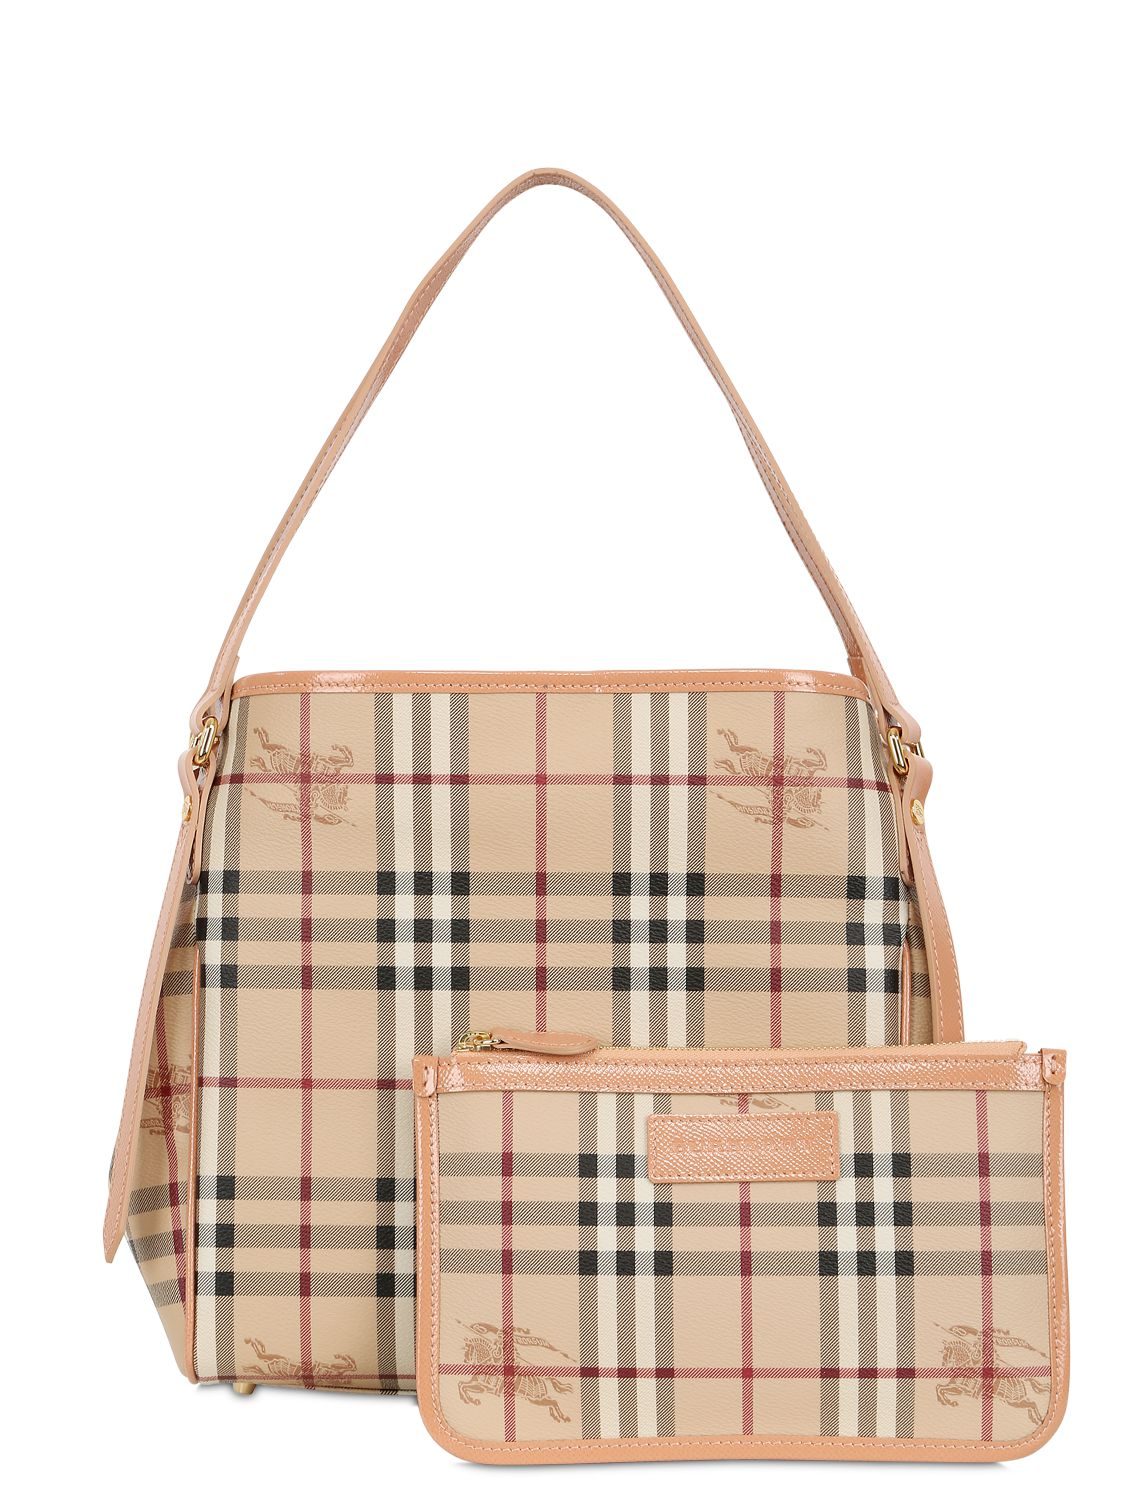 20e88703604f Burberry Small Canter Horseferry Check Tote Ash Rose Dusty Pink. Pink Plaid  Burberry Purse Best Image Ccdbb